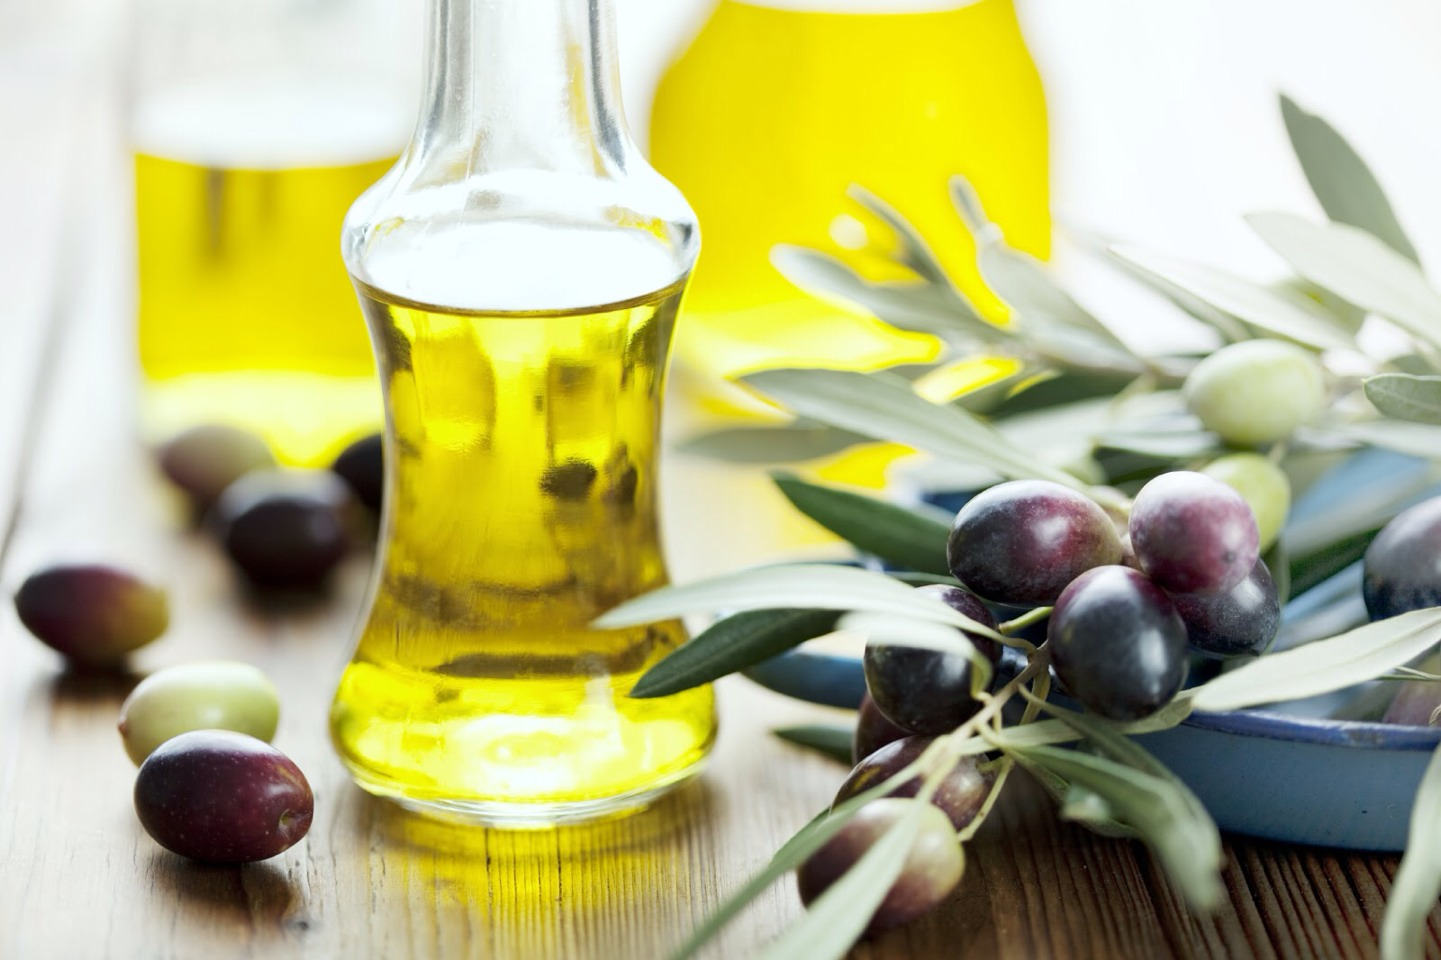 Rub lukewarm olive oil on your eyebrows at night and massage it until you feel it warm